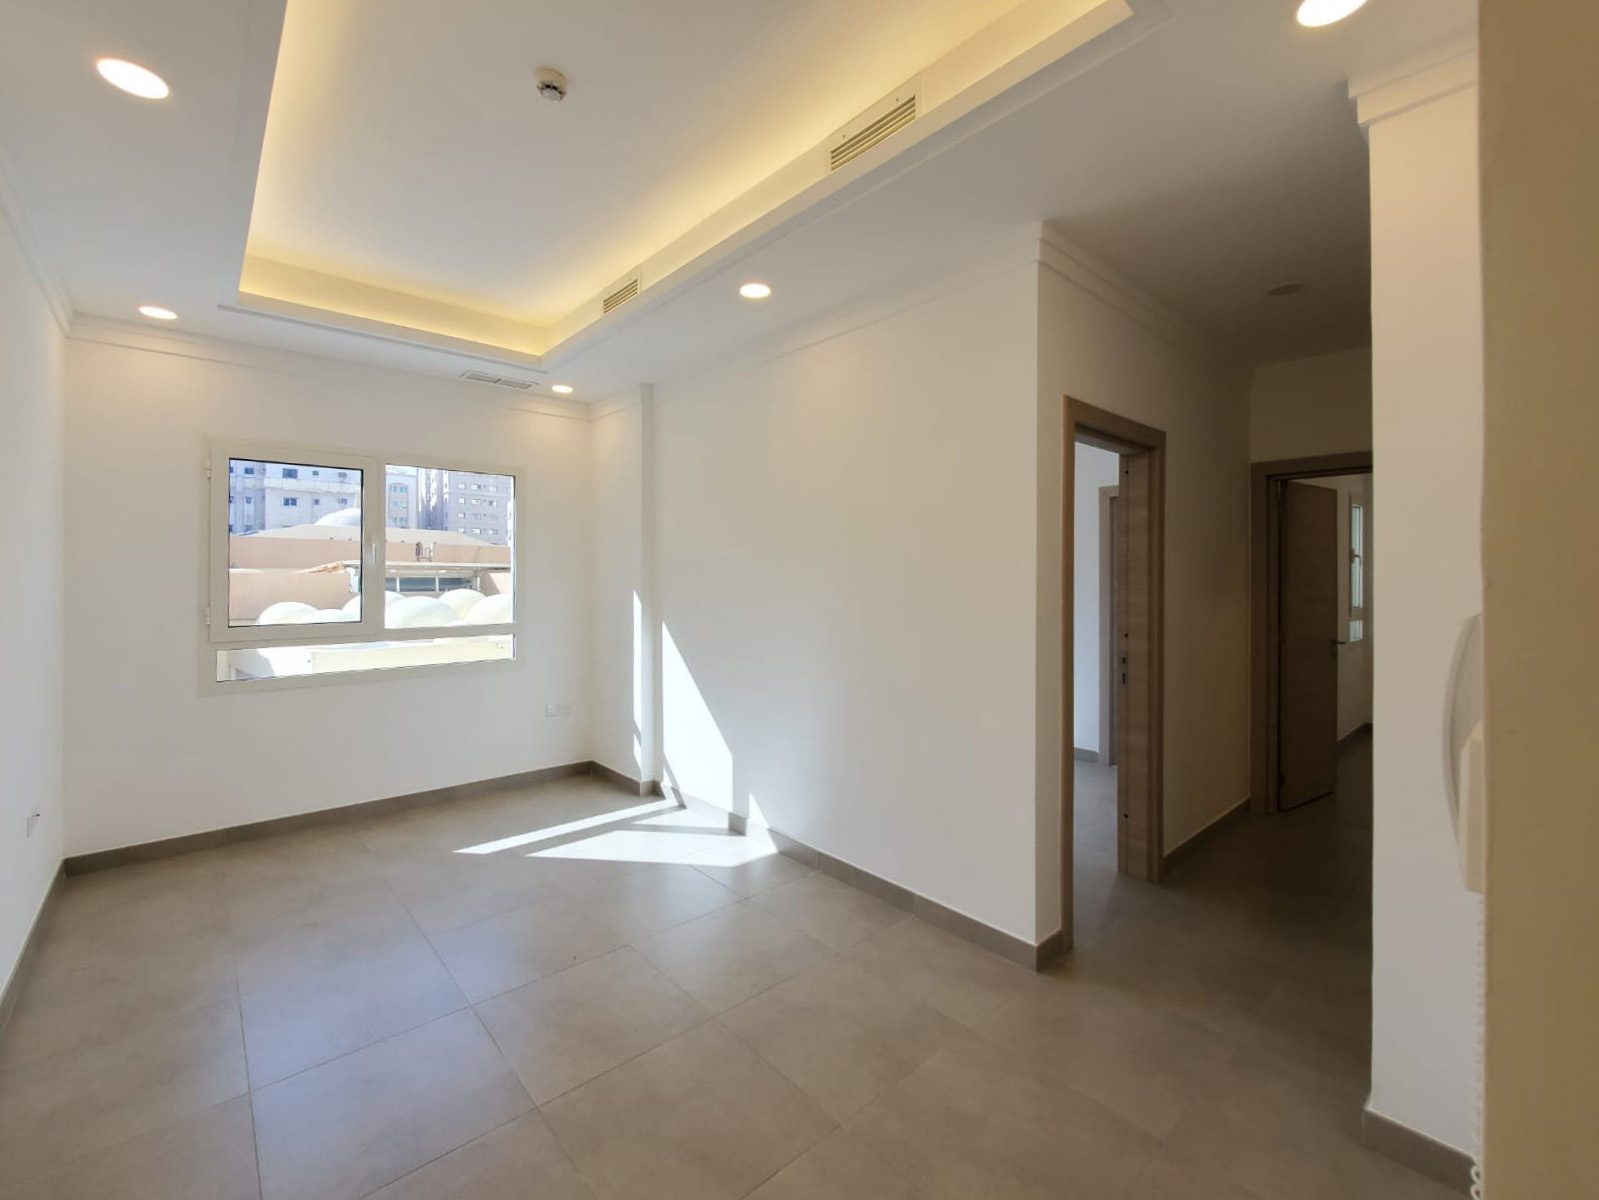 Salmiya – new, small two bedroom apartment